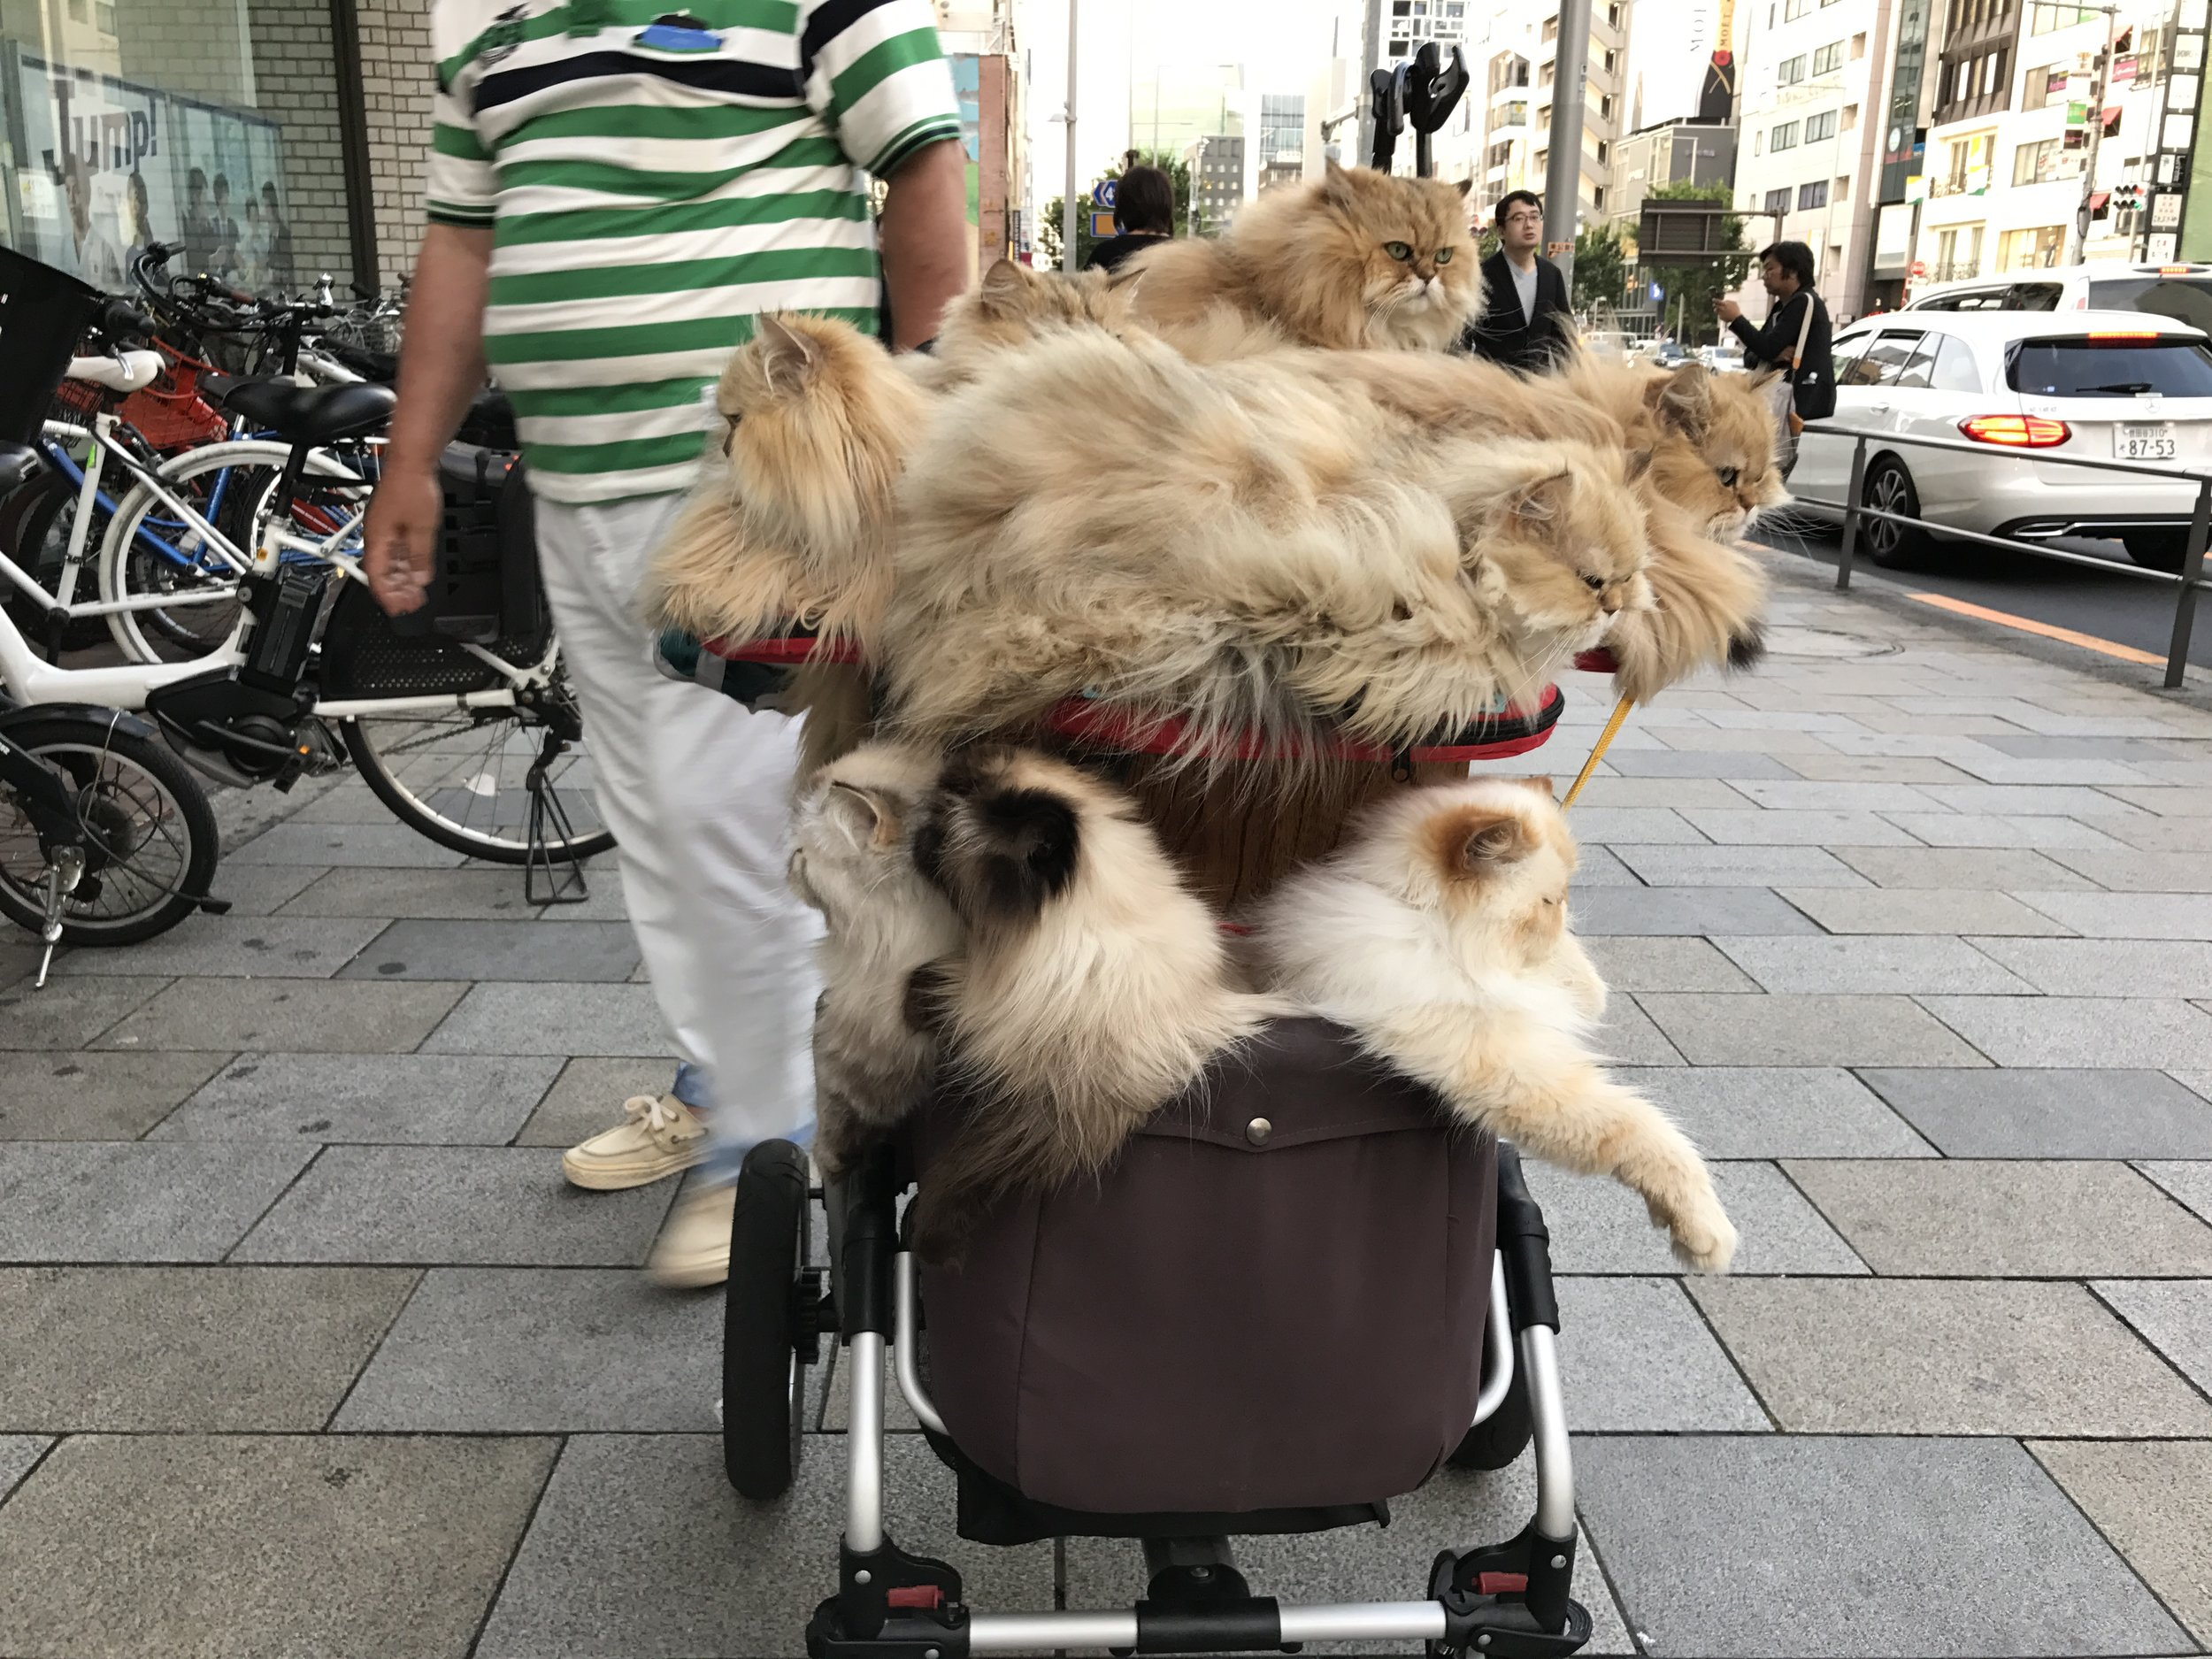 Baby stroller full of cats? In Tokyo, it's just an average day on the sidewalk.